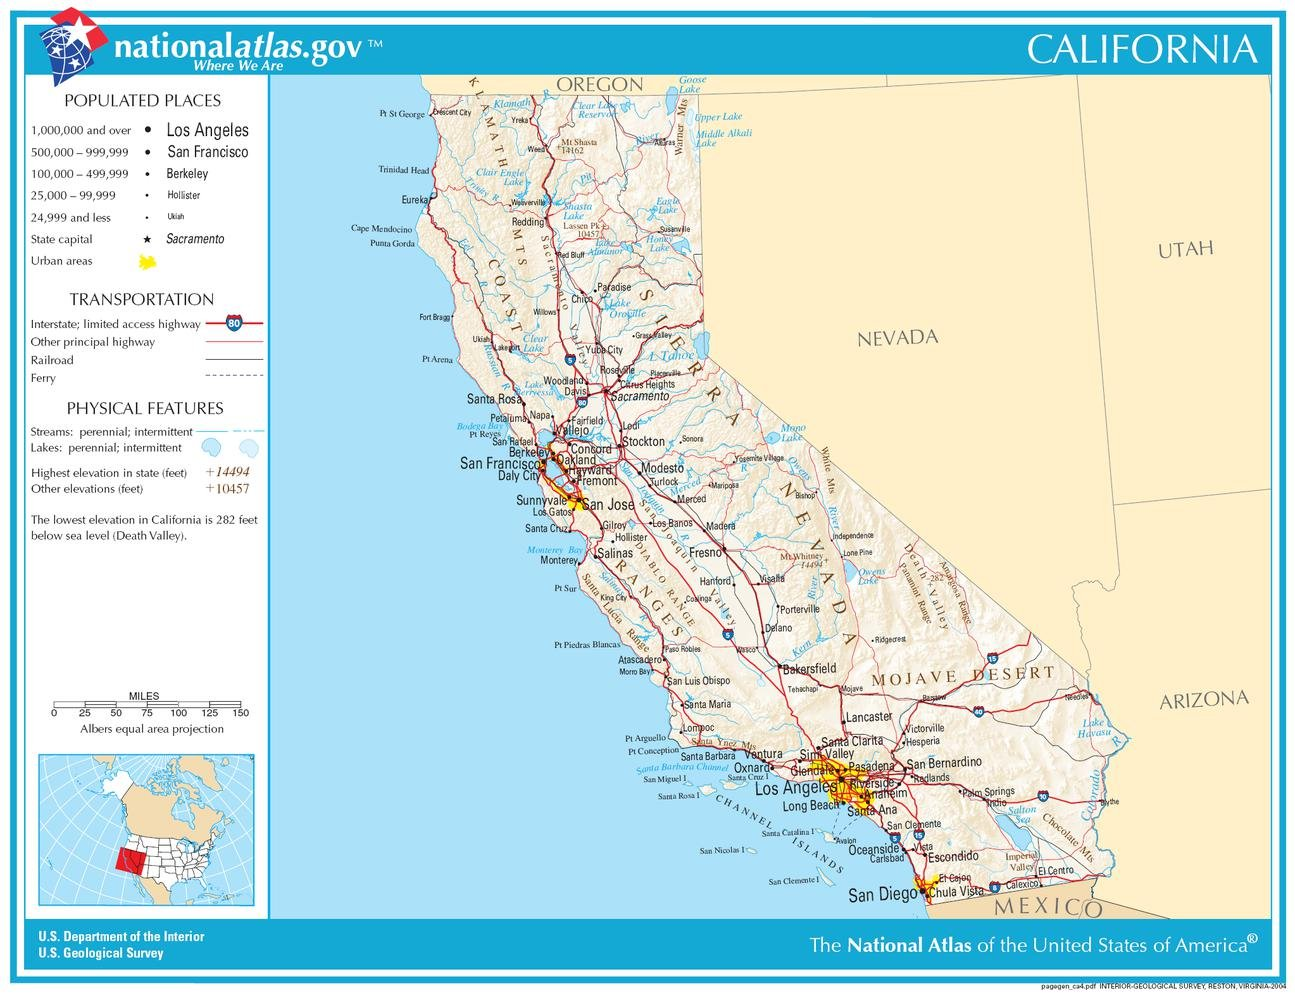 Amazon.com: Gifts Delight Laminated 28x21 Poster: Map of California NA: Posters & Prints